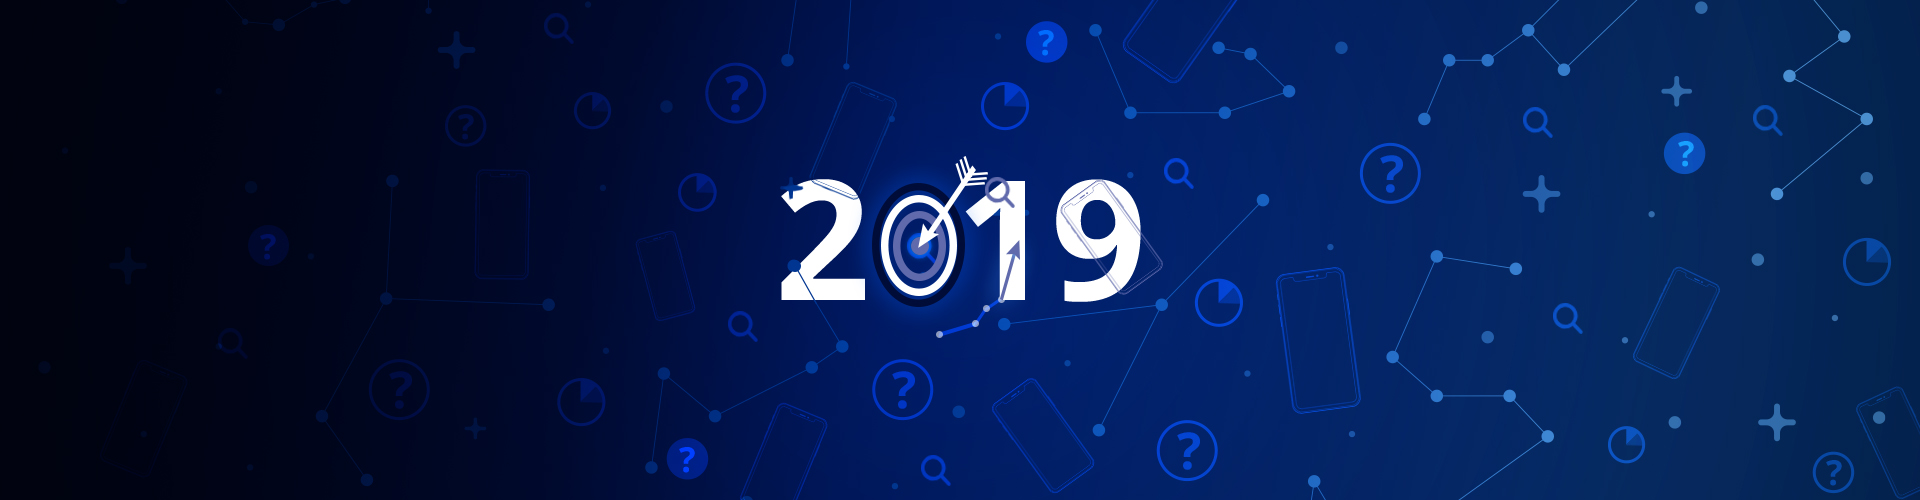 PageSuite's 2019 Digital Publishing Predictions